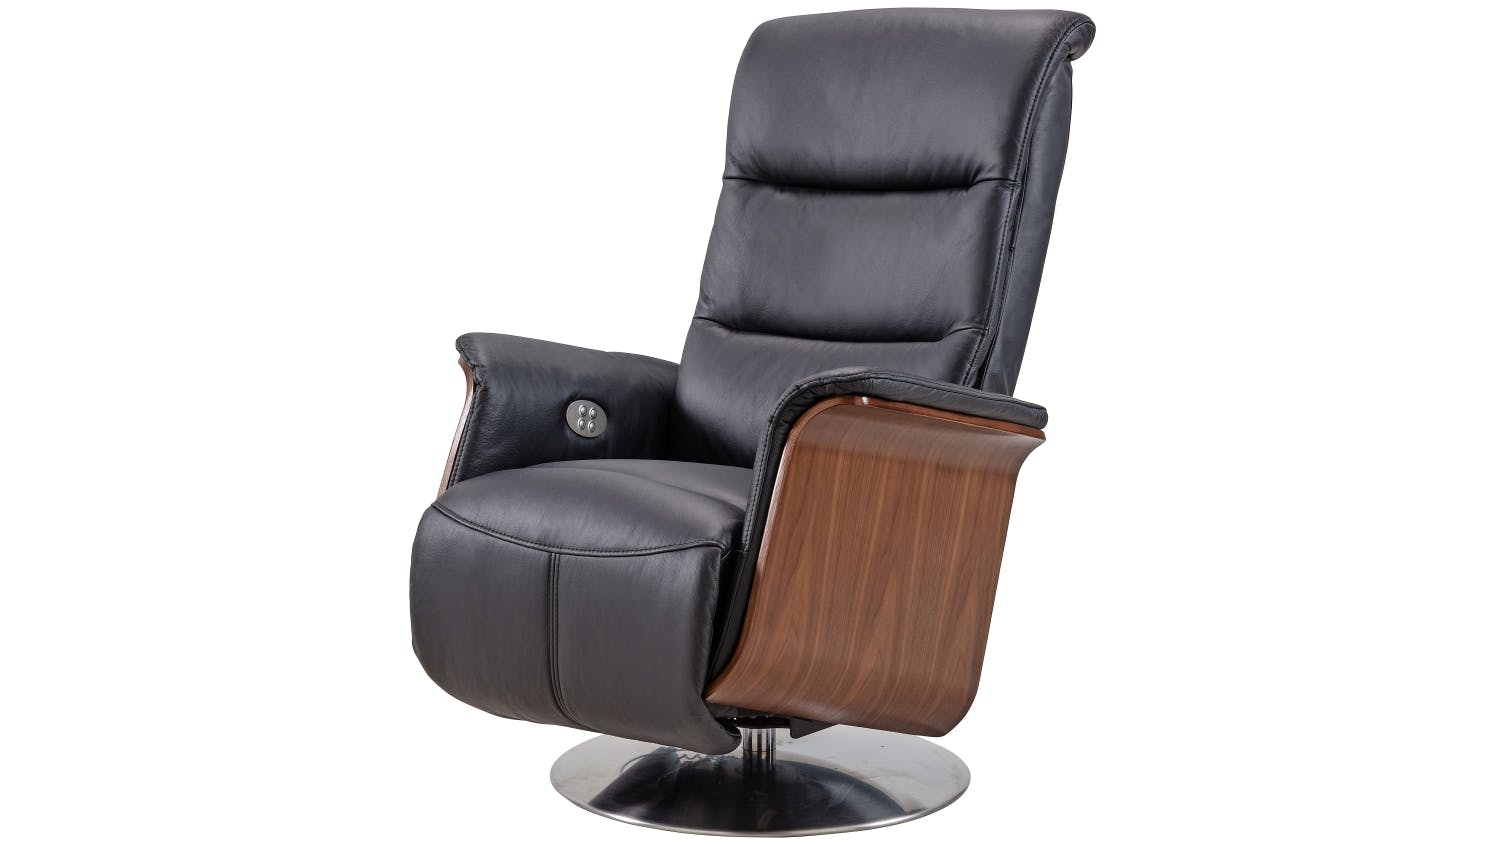 Narrow Armchair Accent Chairs Stools Armchair Recliners More Domayne